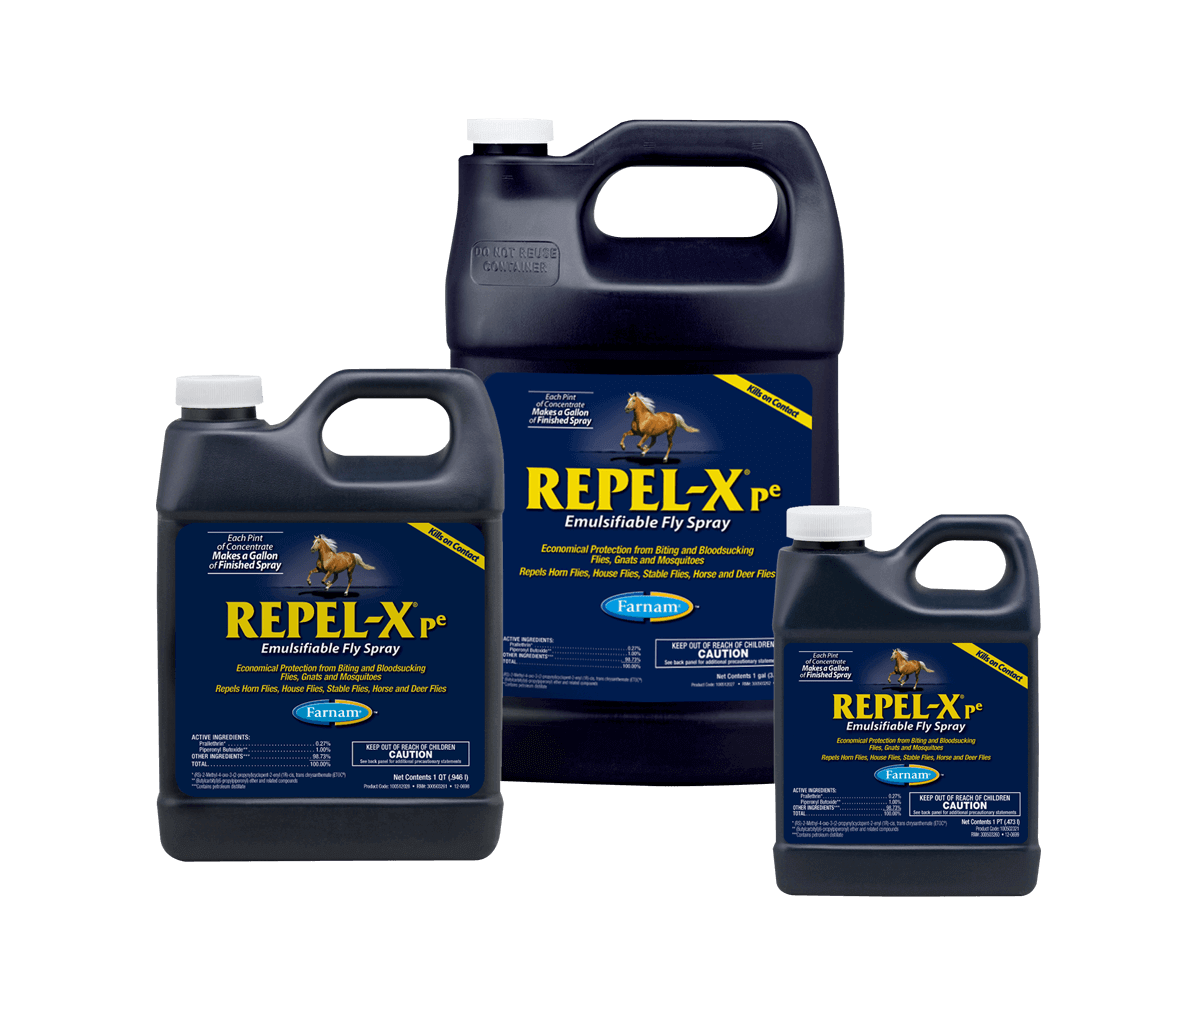 Repel-X<sup>®</sup> pe Emulsifiable Fly Spray - A Complete Line of Fly and Insect Control Products